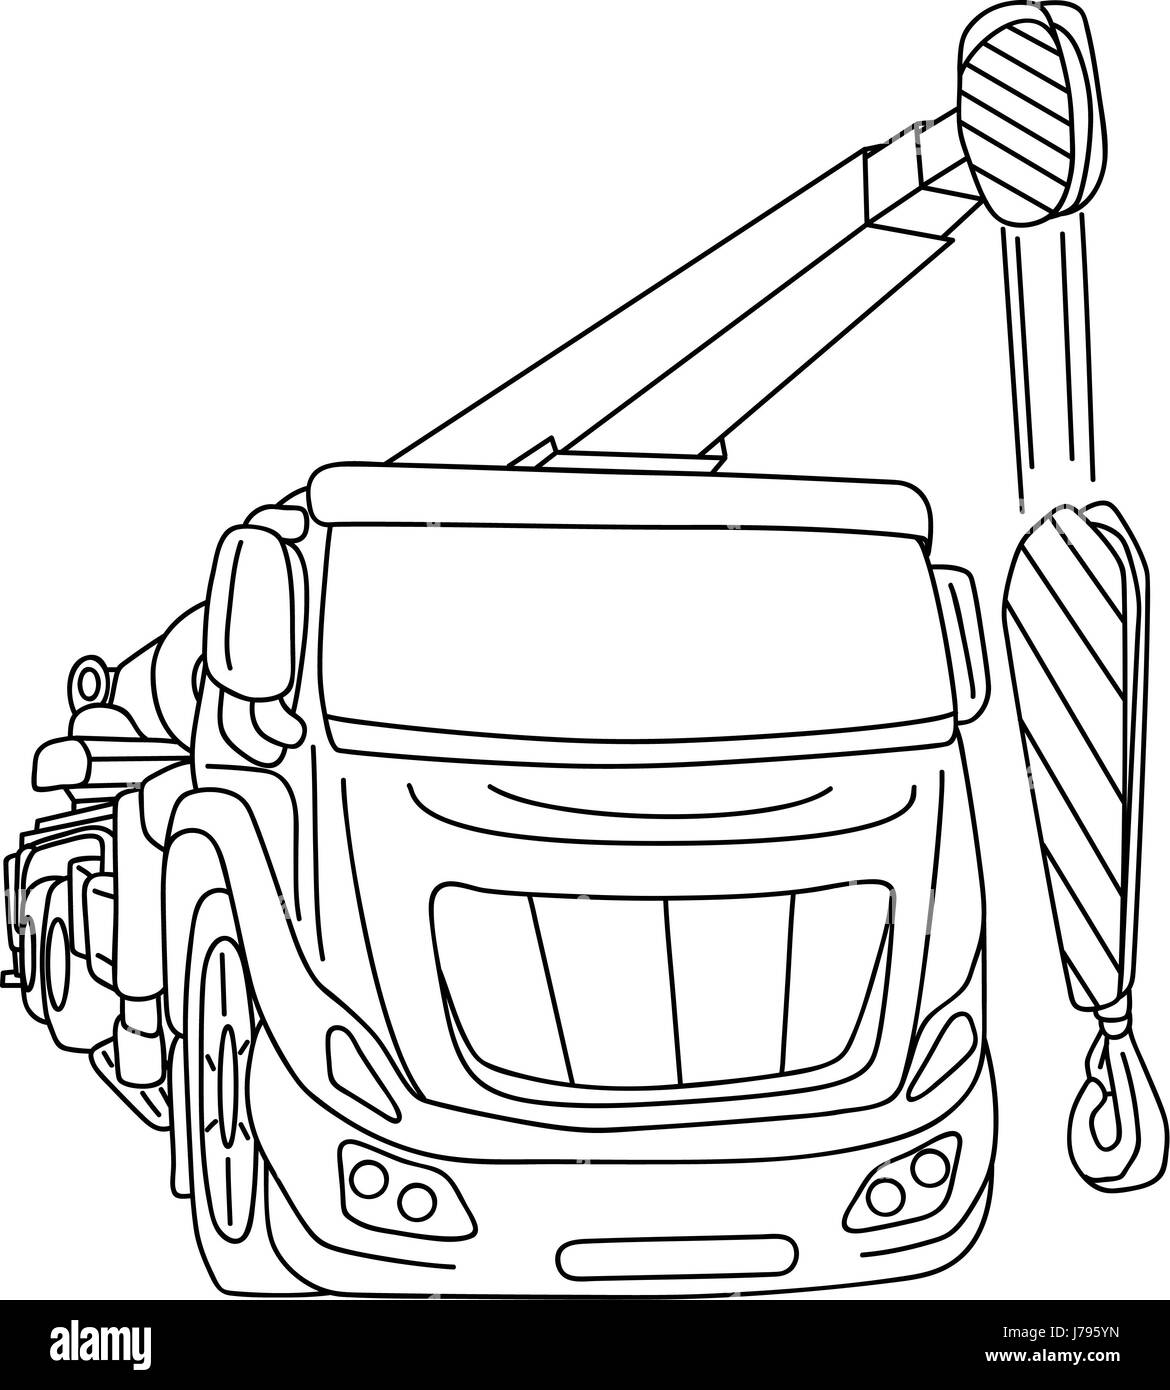 Colour a car - Stock Photo Isolated Colour Illustration Paint Draw Cartoon Crane Motion Postponement